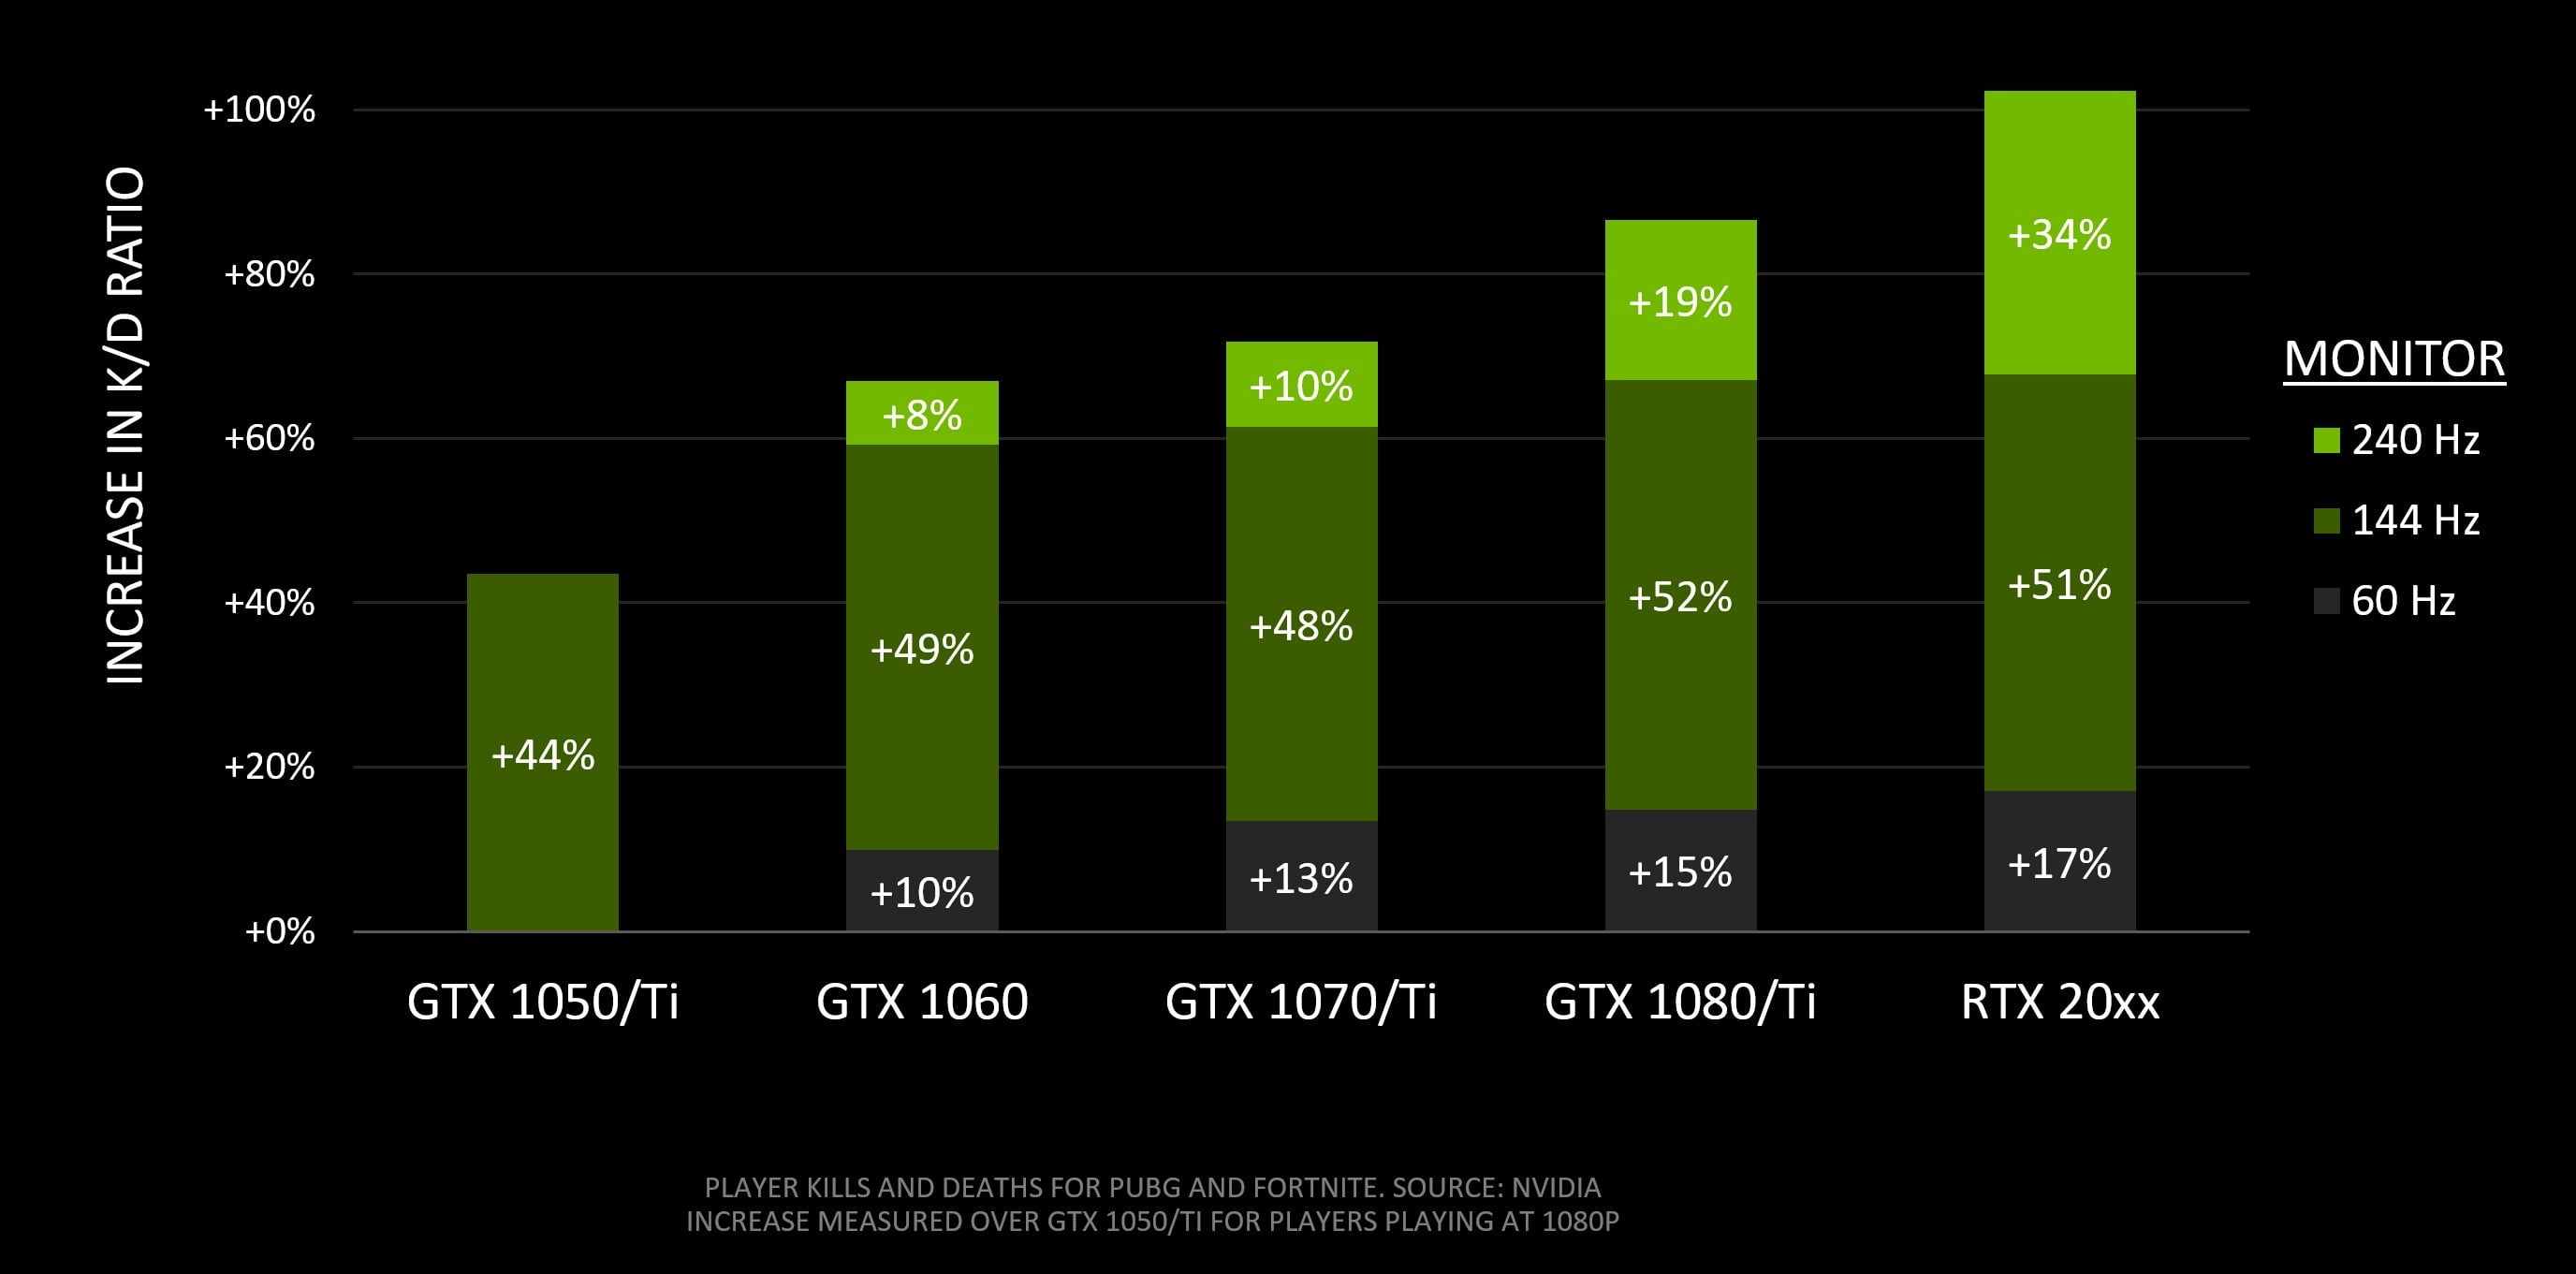 Nvidia Proves Gamers Win More with Better Graphics Cards and